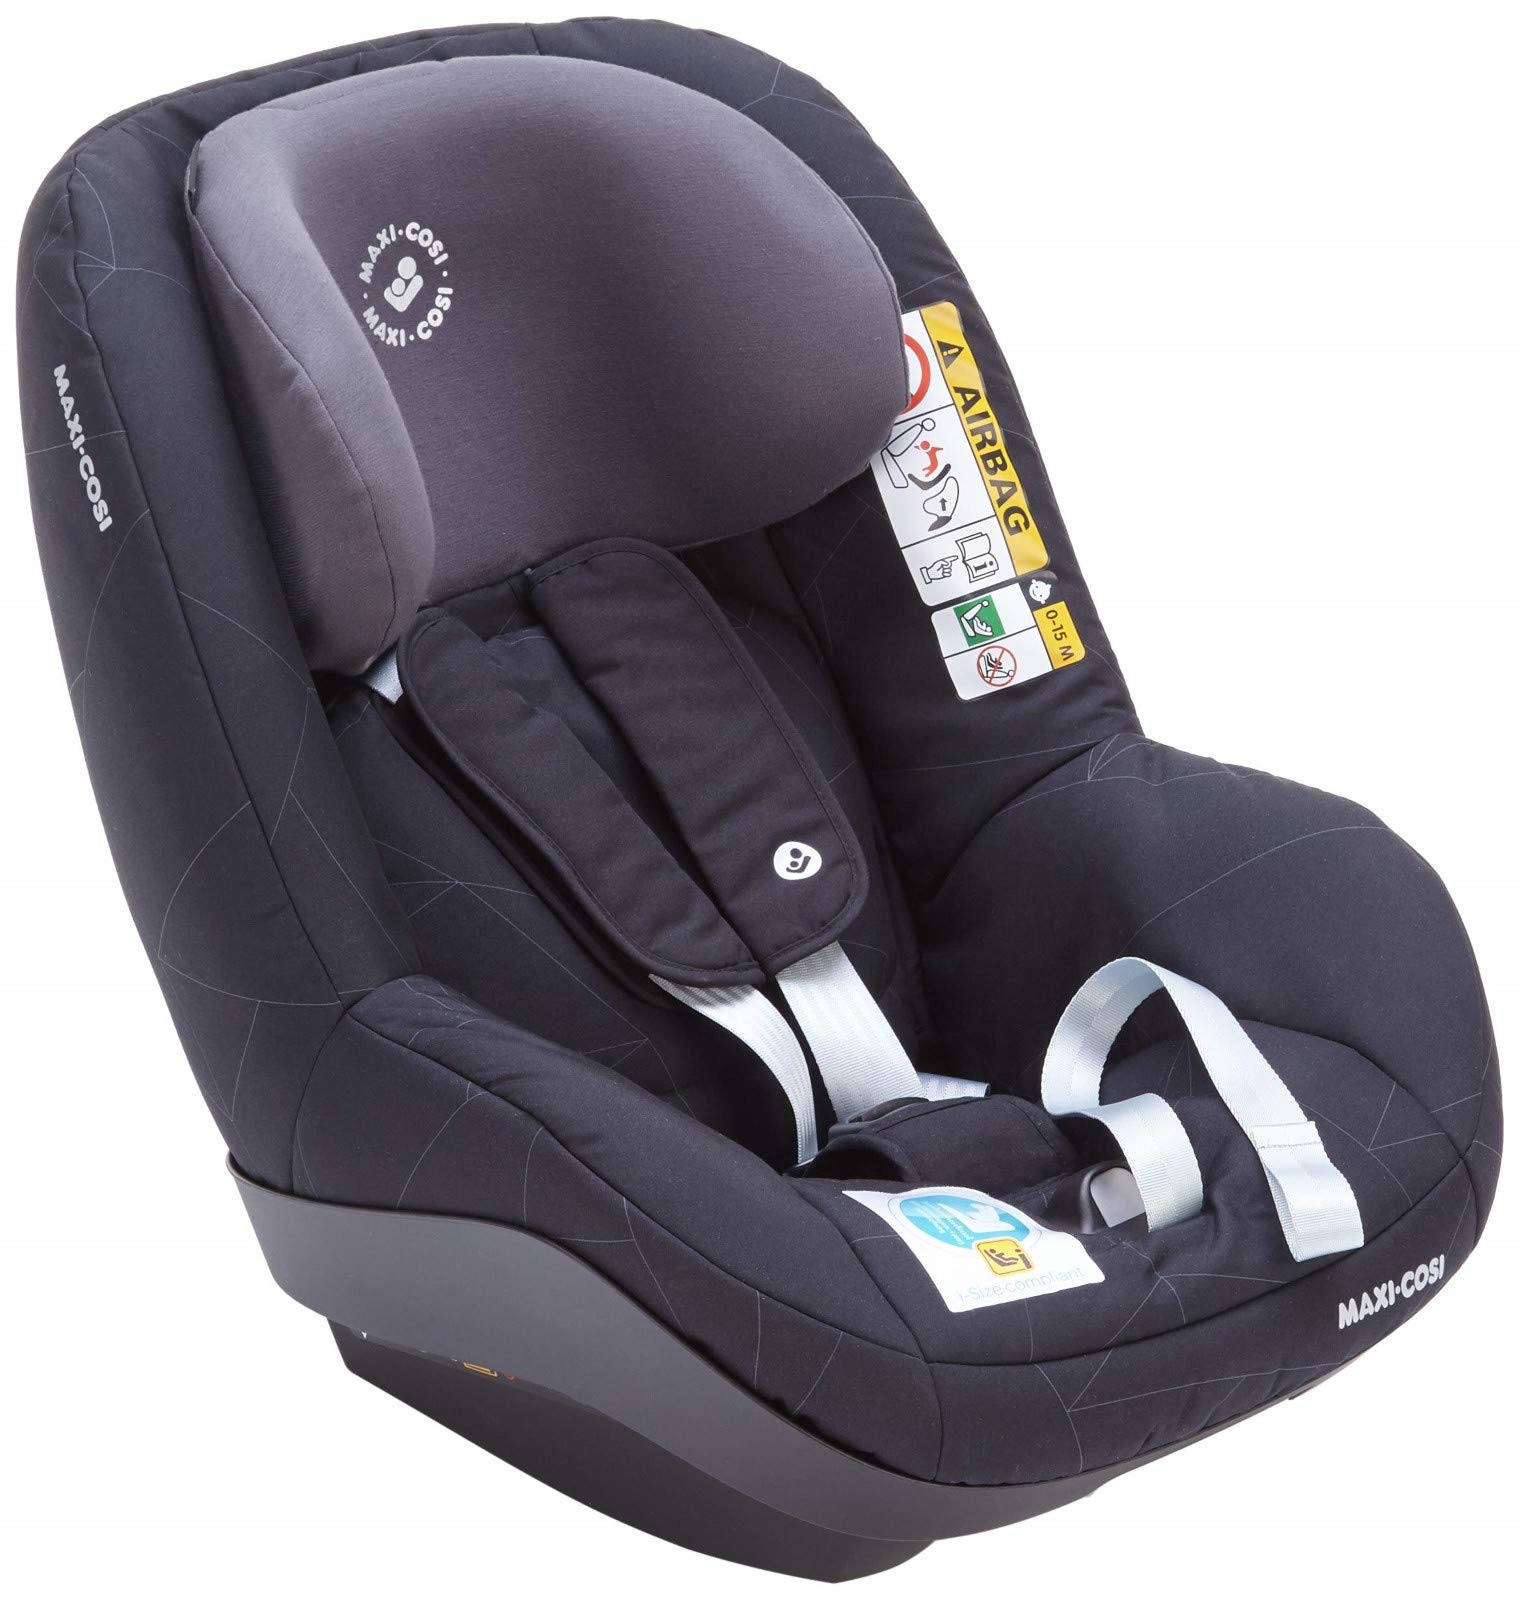 Maxi-Cosi Pearl Smart i-Size Toddler Car Seat, 6 Months - 4 Years, 9-18 kg, 67 - 105 cm, Black Diamond Maxi-Cosi Car seat for toddlers, suitable from 6 months to 4 years (9 - 18 kg, 67 - 105 cm) Must be installed in combination with family fix one i-size base Harness and headrest of this car seat adjust simultaneously for easy adjustment when child grows 2